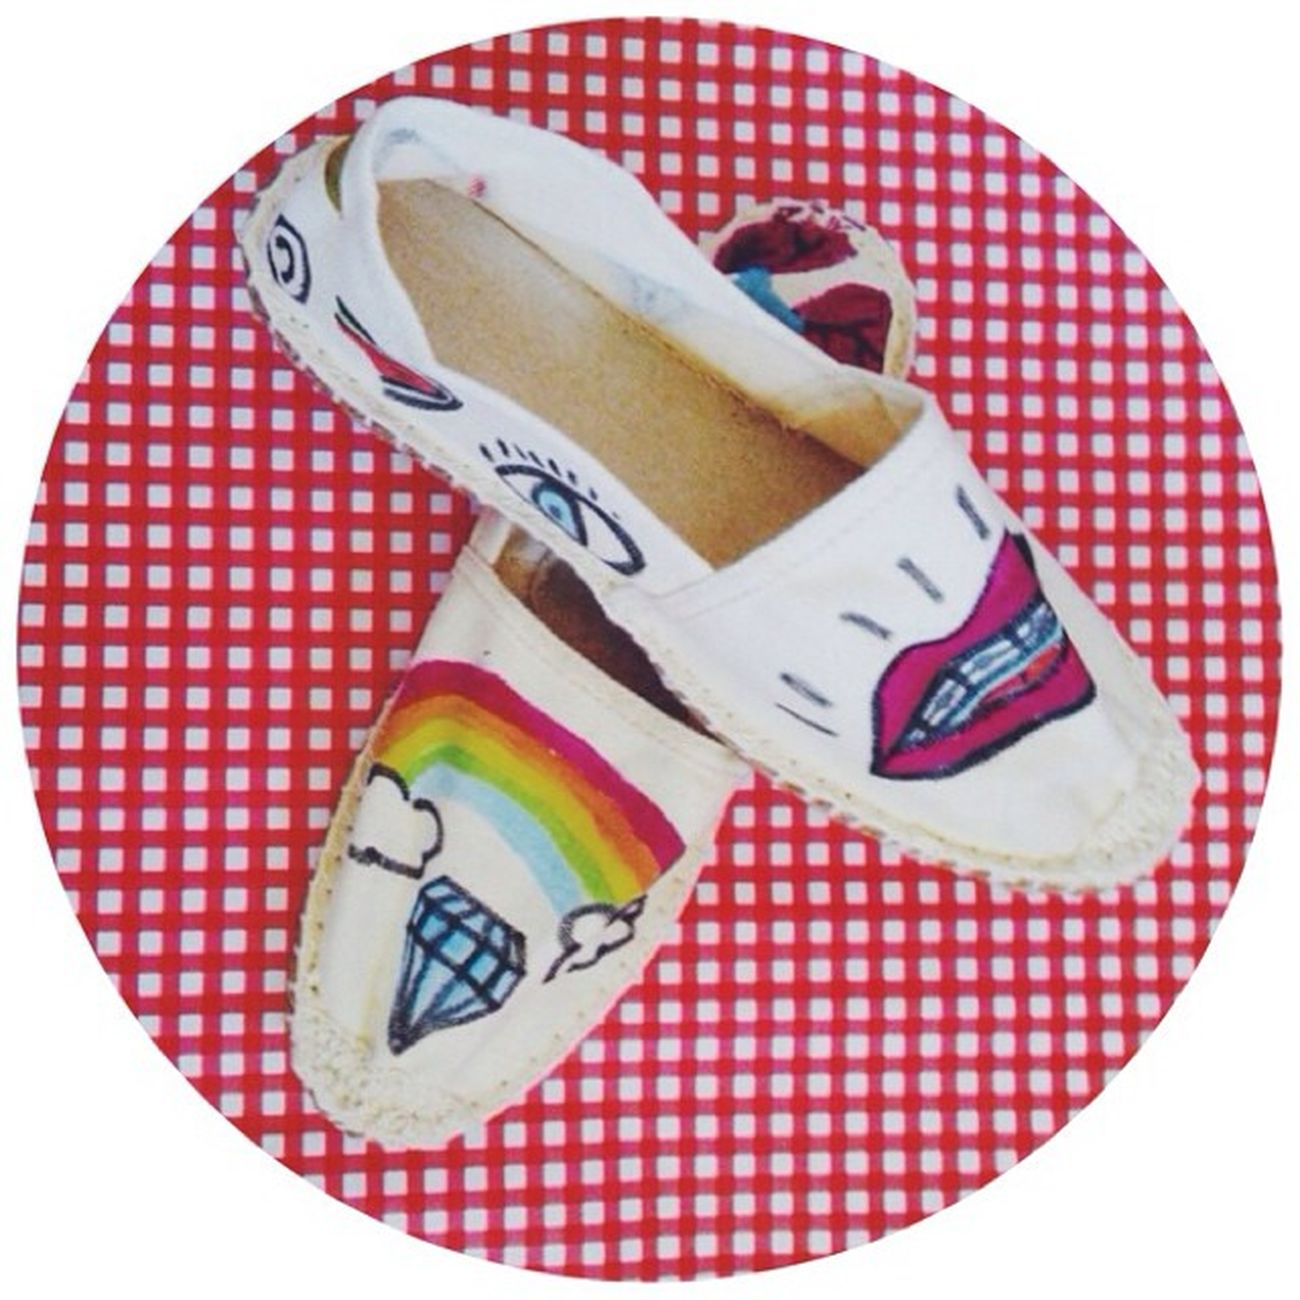 Pimp my Espadrillas @clorophillaart Espadrillas Clorophillaart Shoes Draw illustration depop